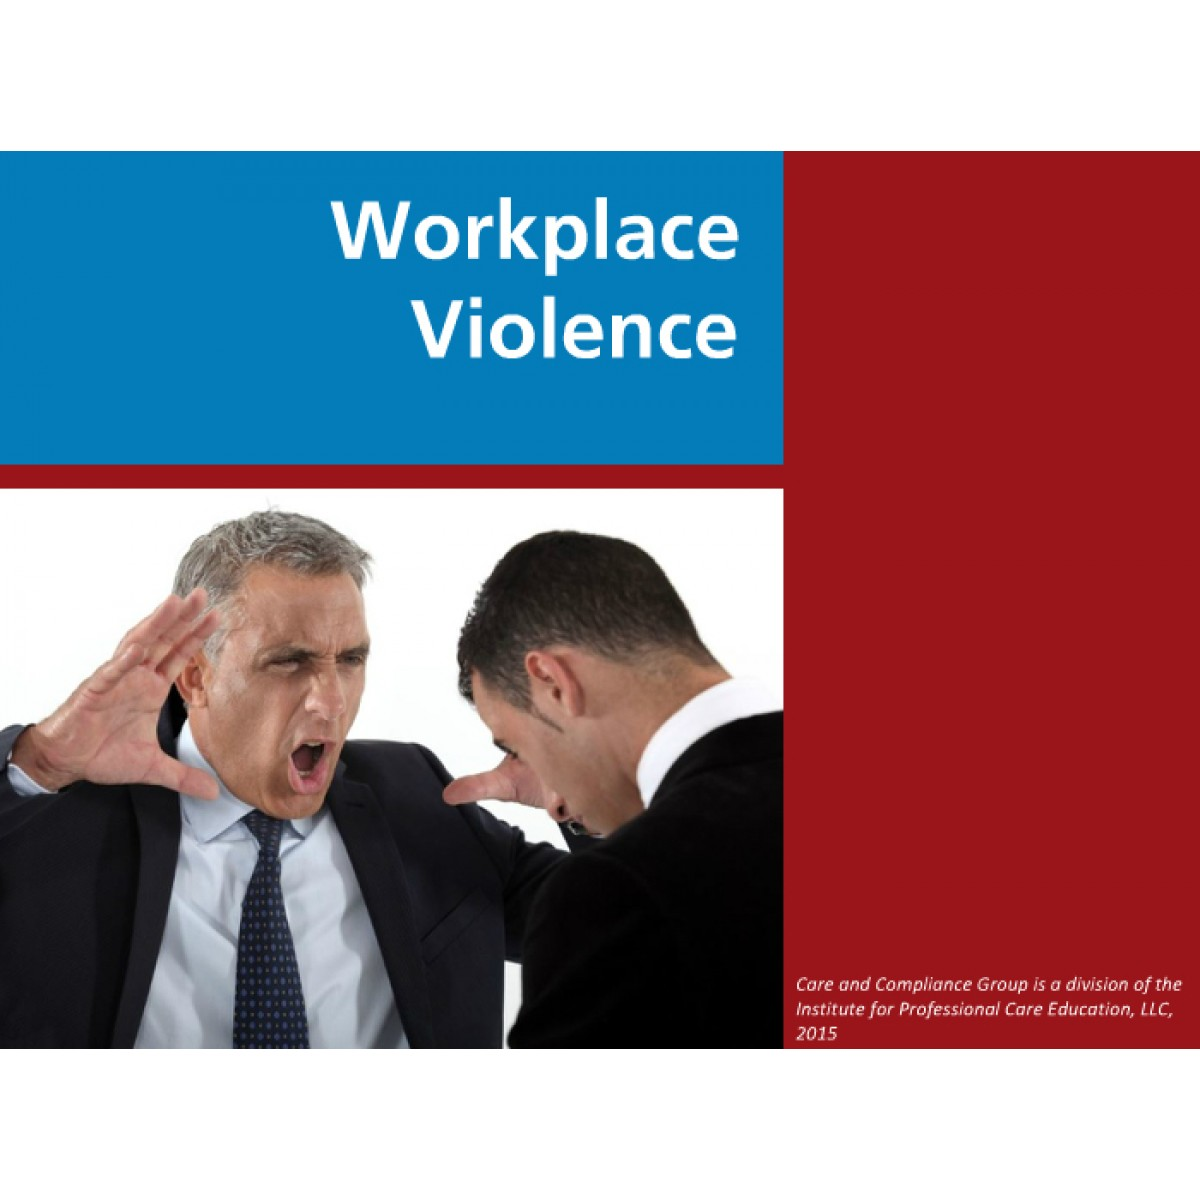 workplace violence in corporate america The workplace violence research institute estimated costs of workplace violence to us businesses at $36 billion per year neville says, costs include medical and psychiatric care, lost business and productivity, repairs and clean up, higher insurance rates, increased security costs, and worst of all, the loss of valued employees.